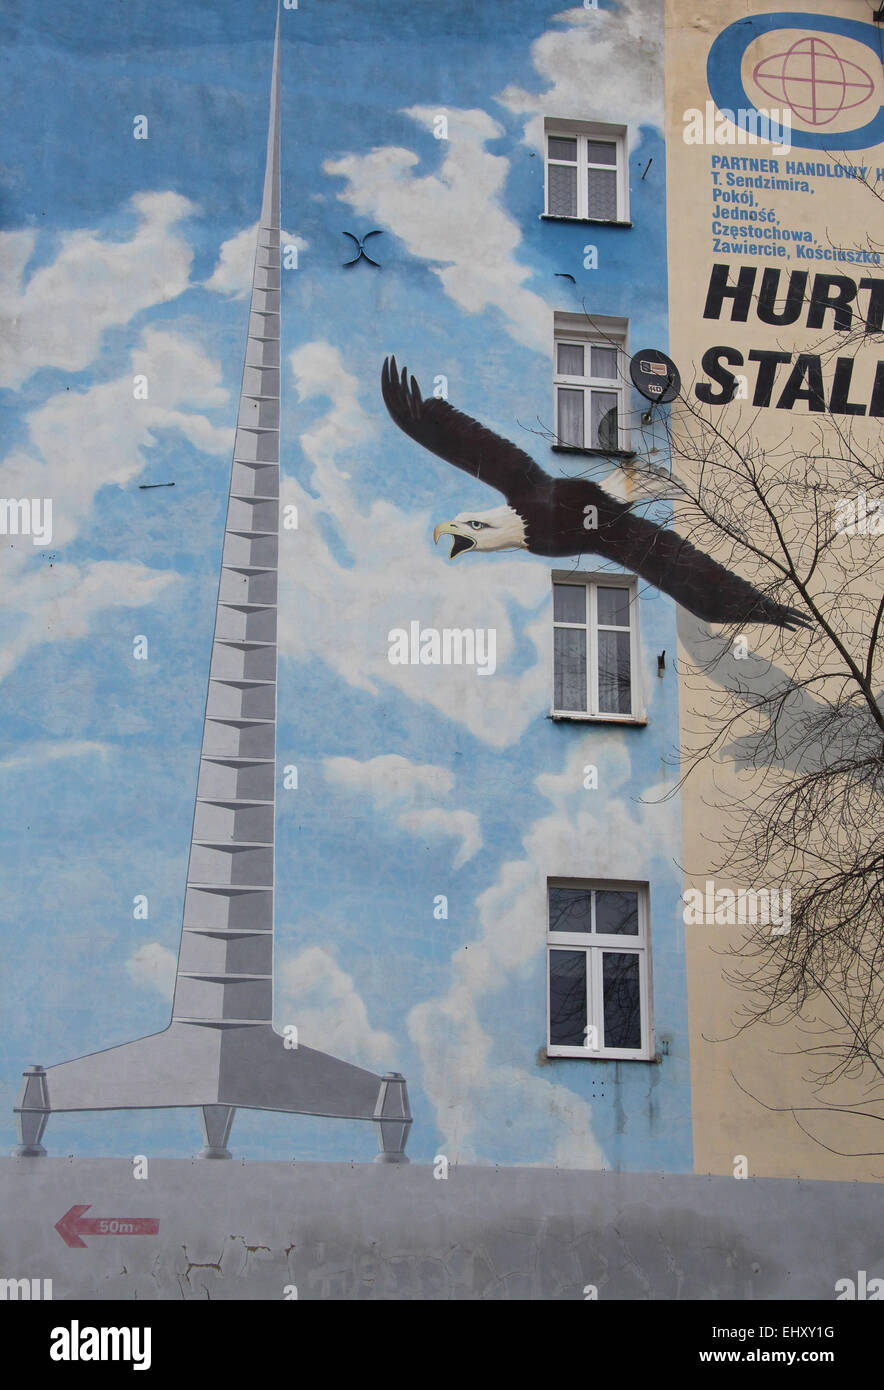 Street Art in Wroclaw - Stock Image